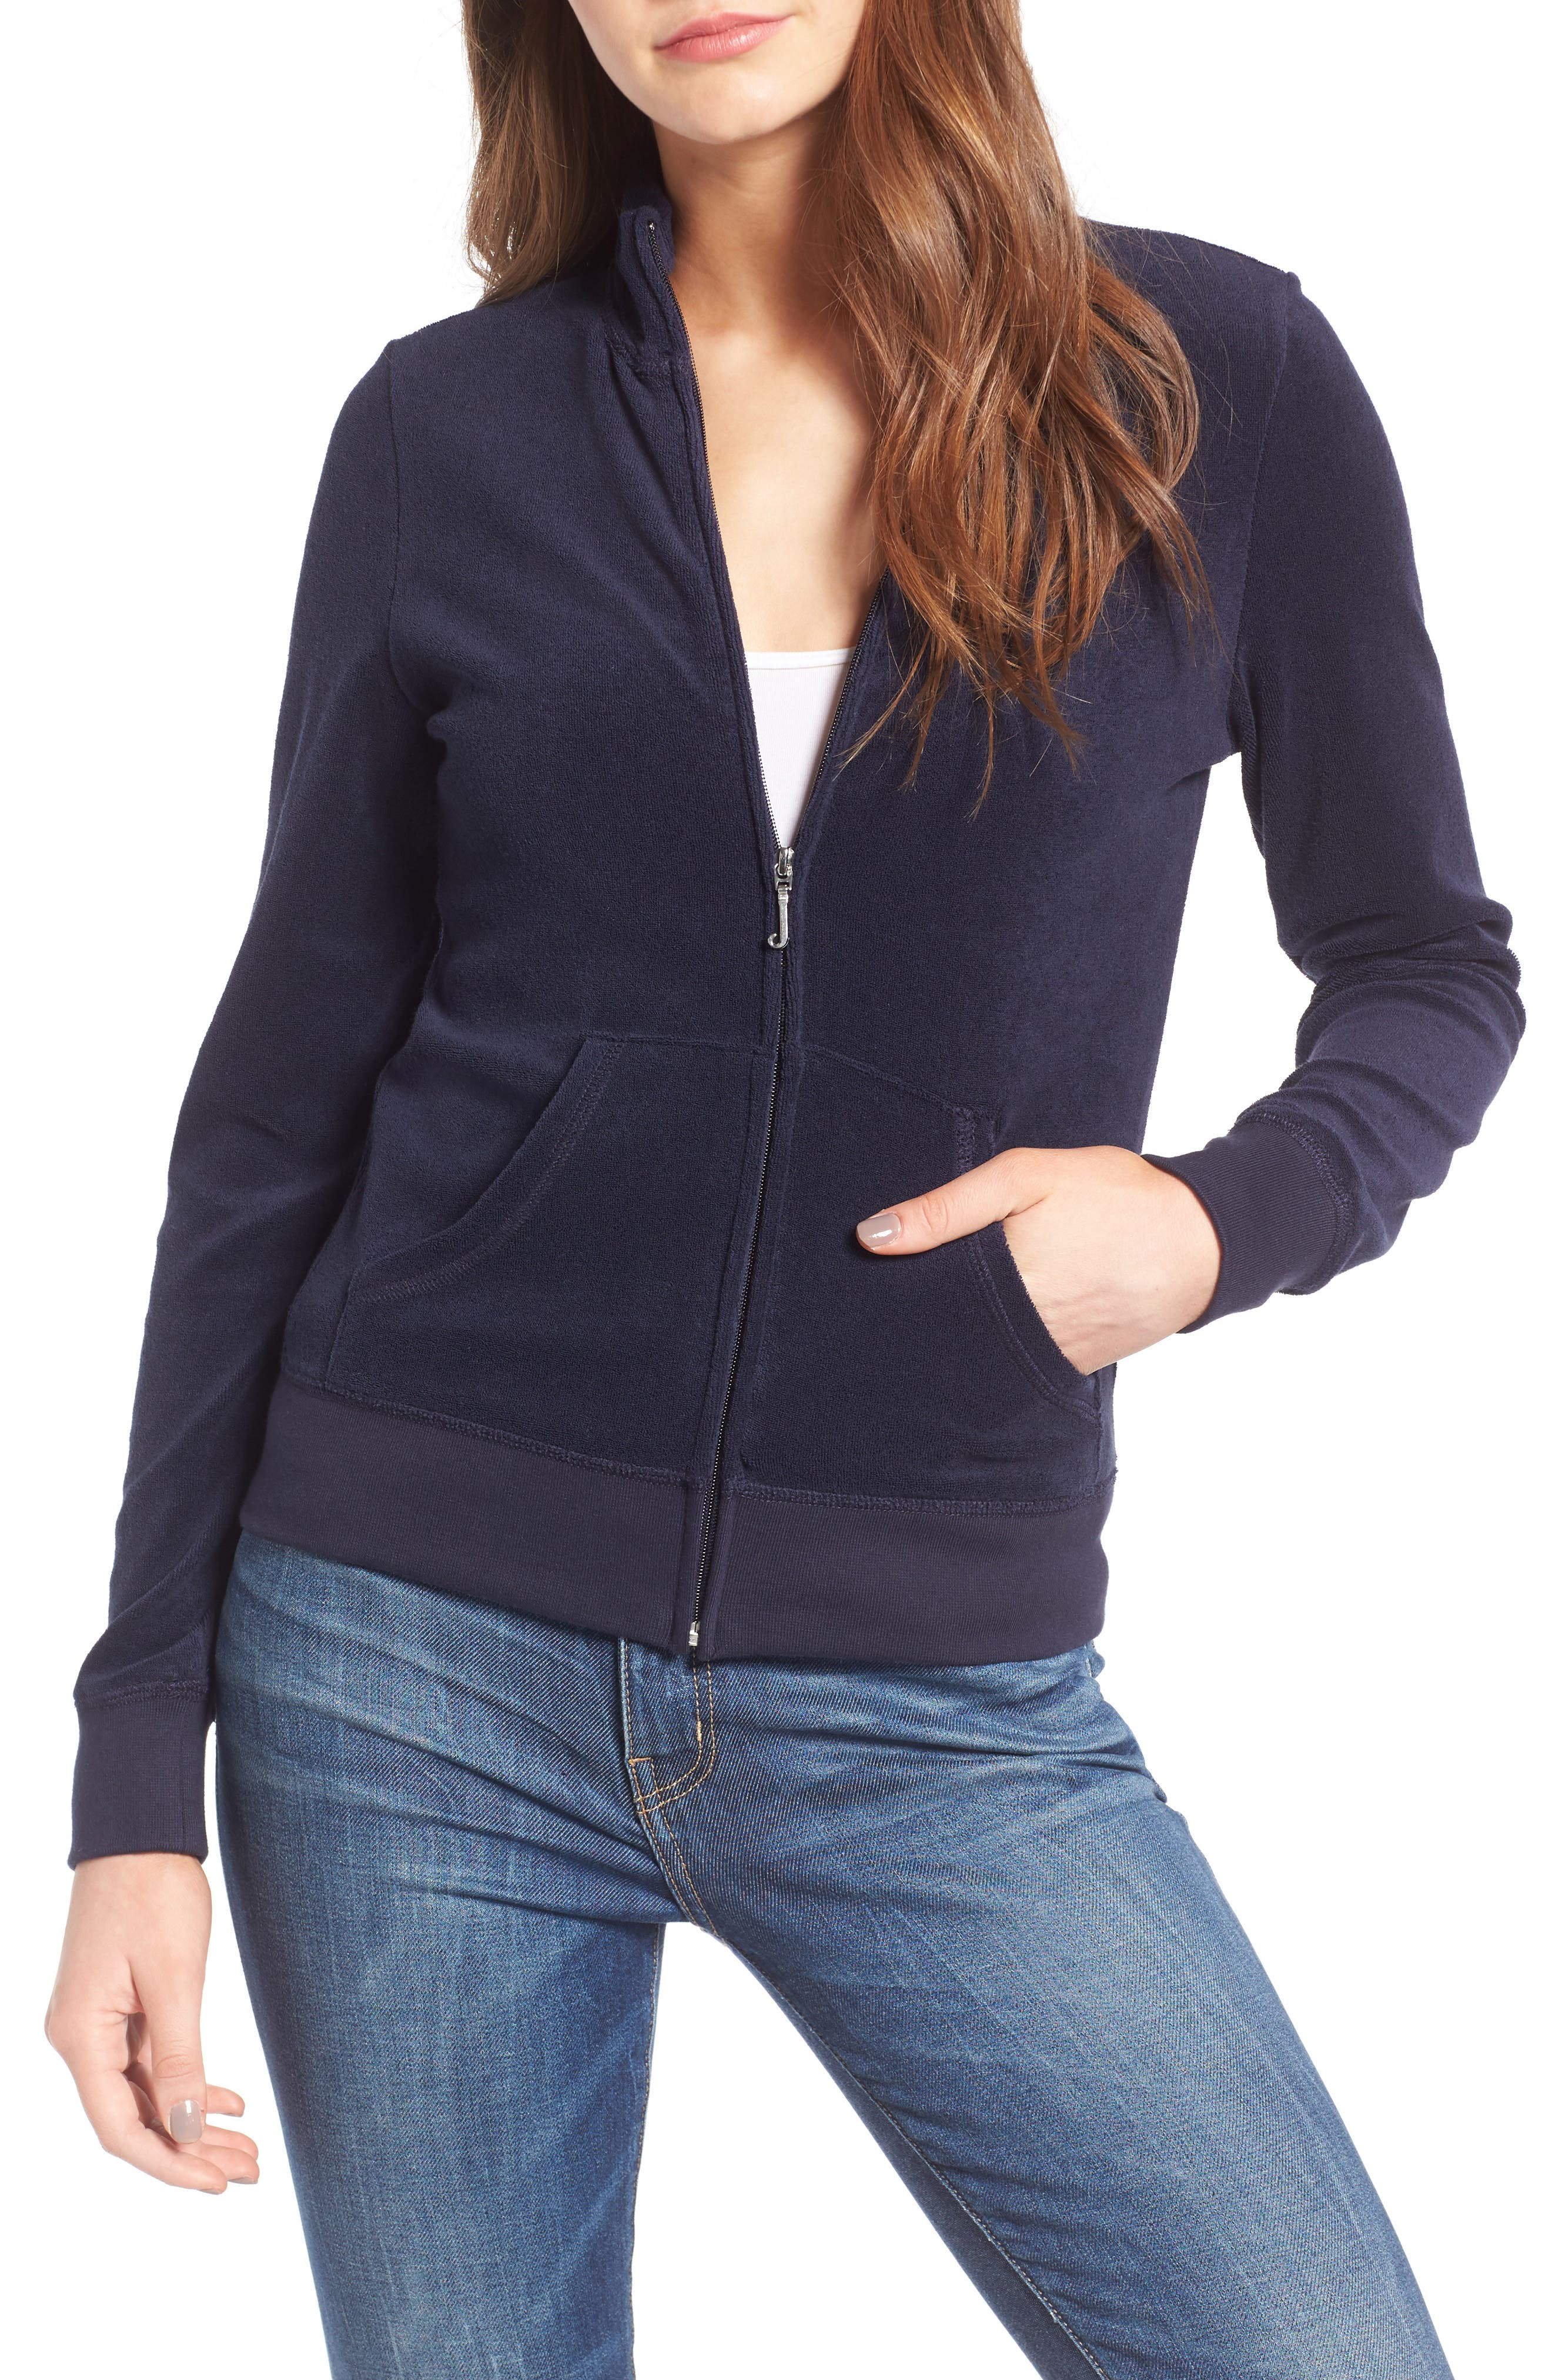 Alternate Image 1 Selected - Juicy Couture Fairfax Terry Track Jacket